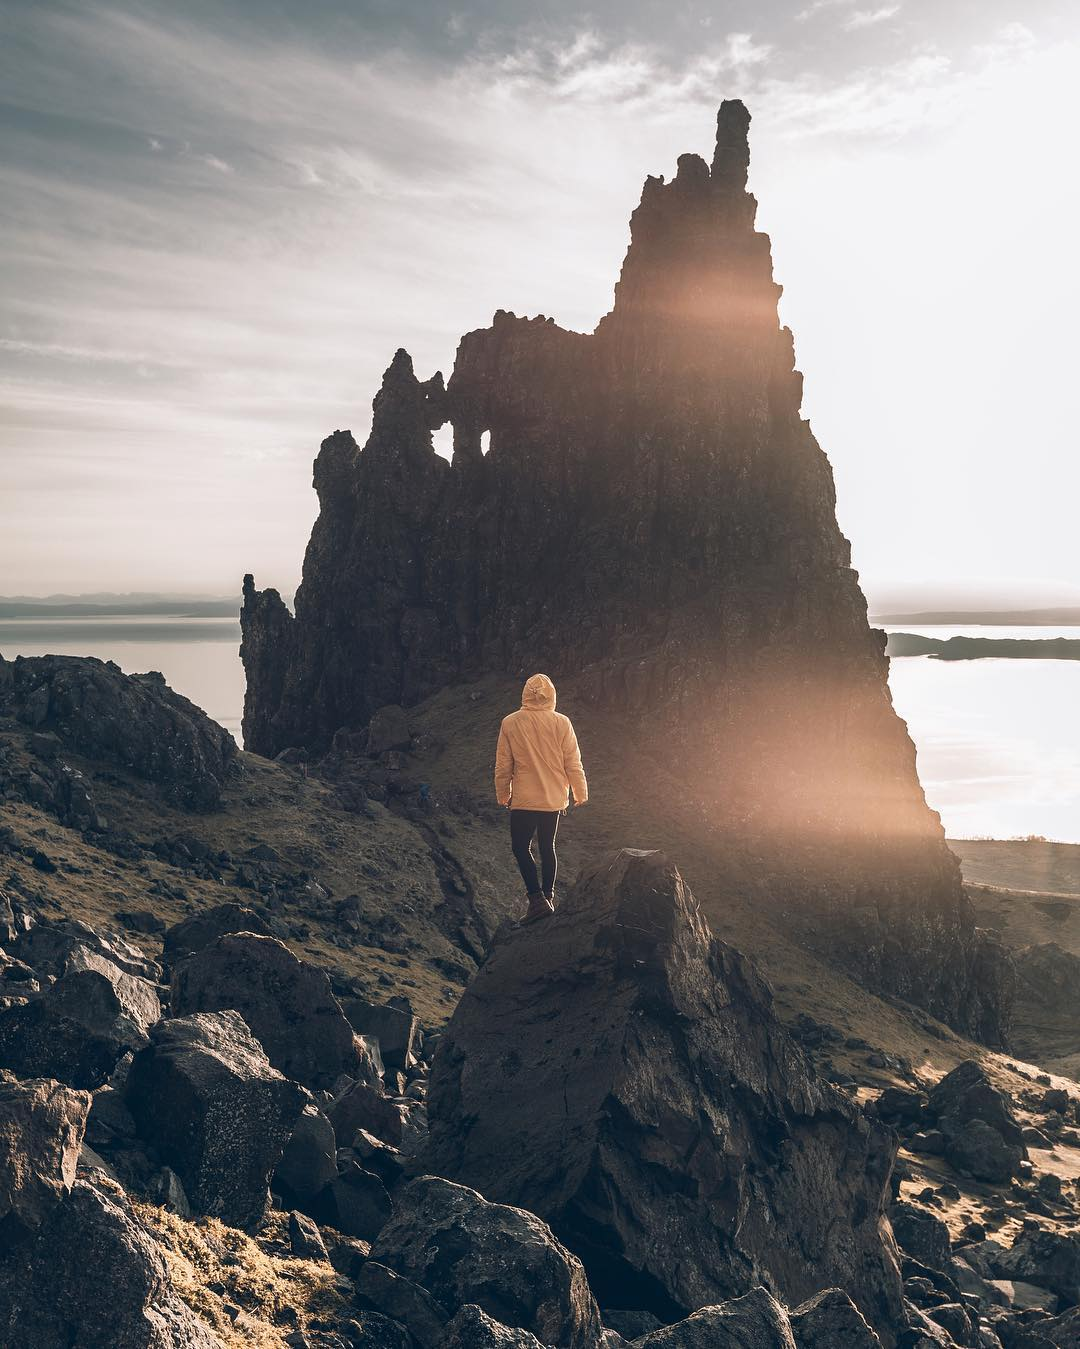 The Storr by @bluemoonthecrew